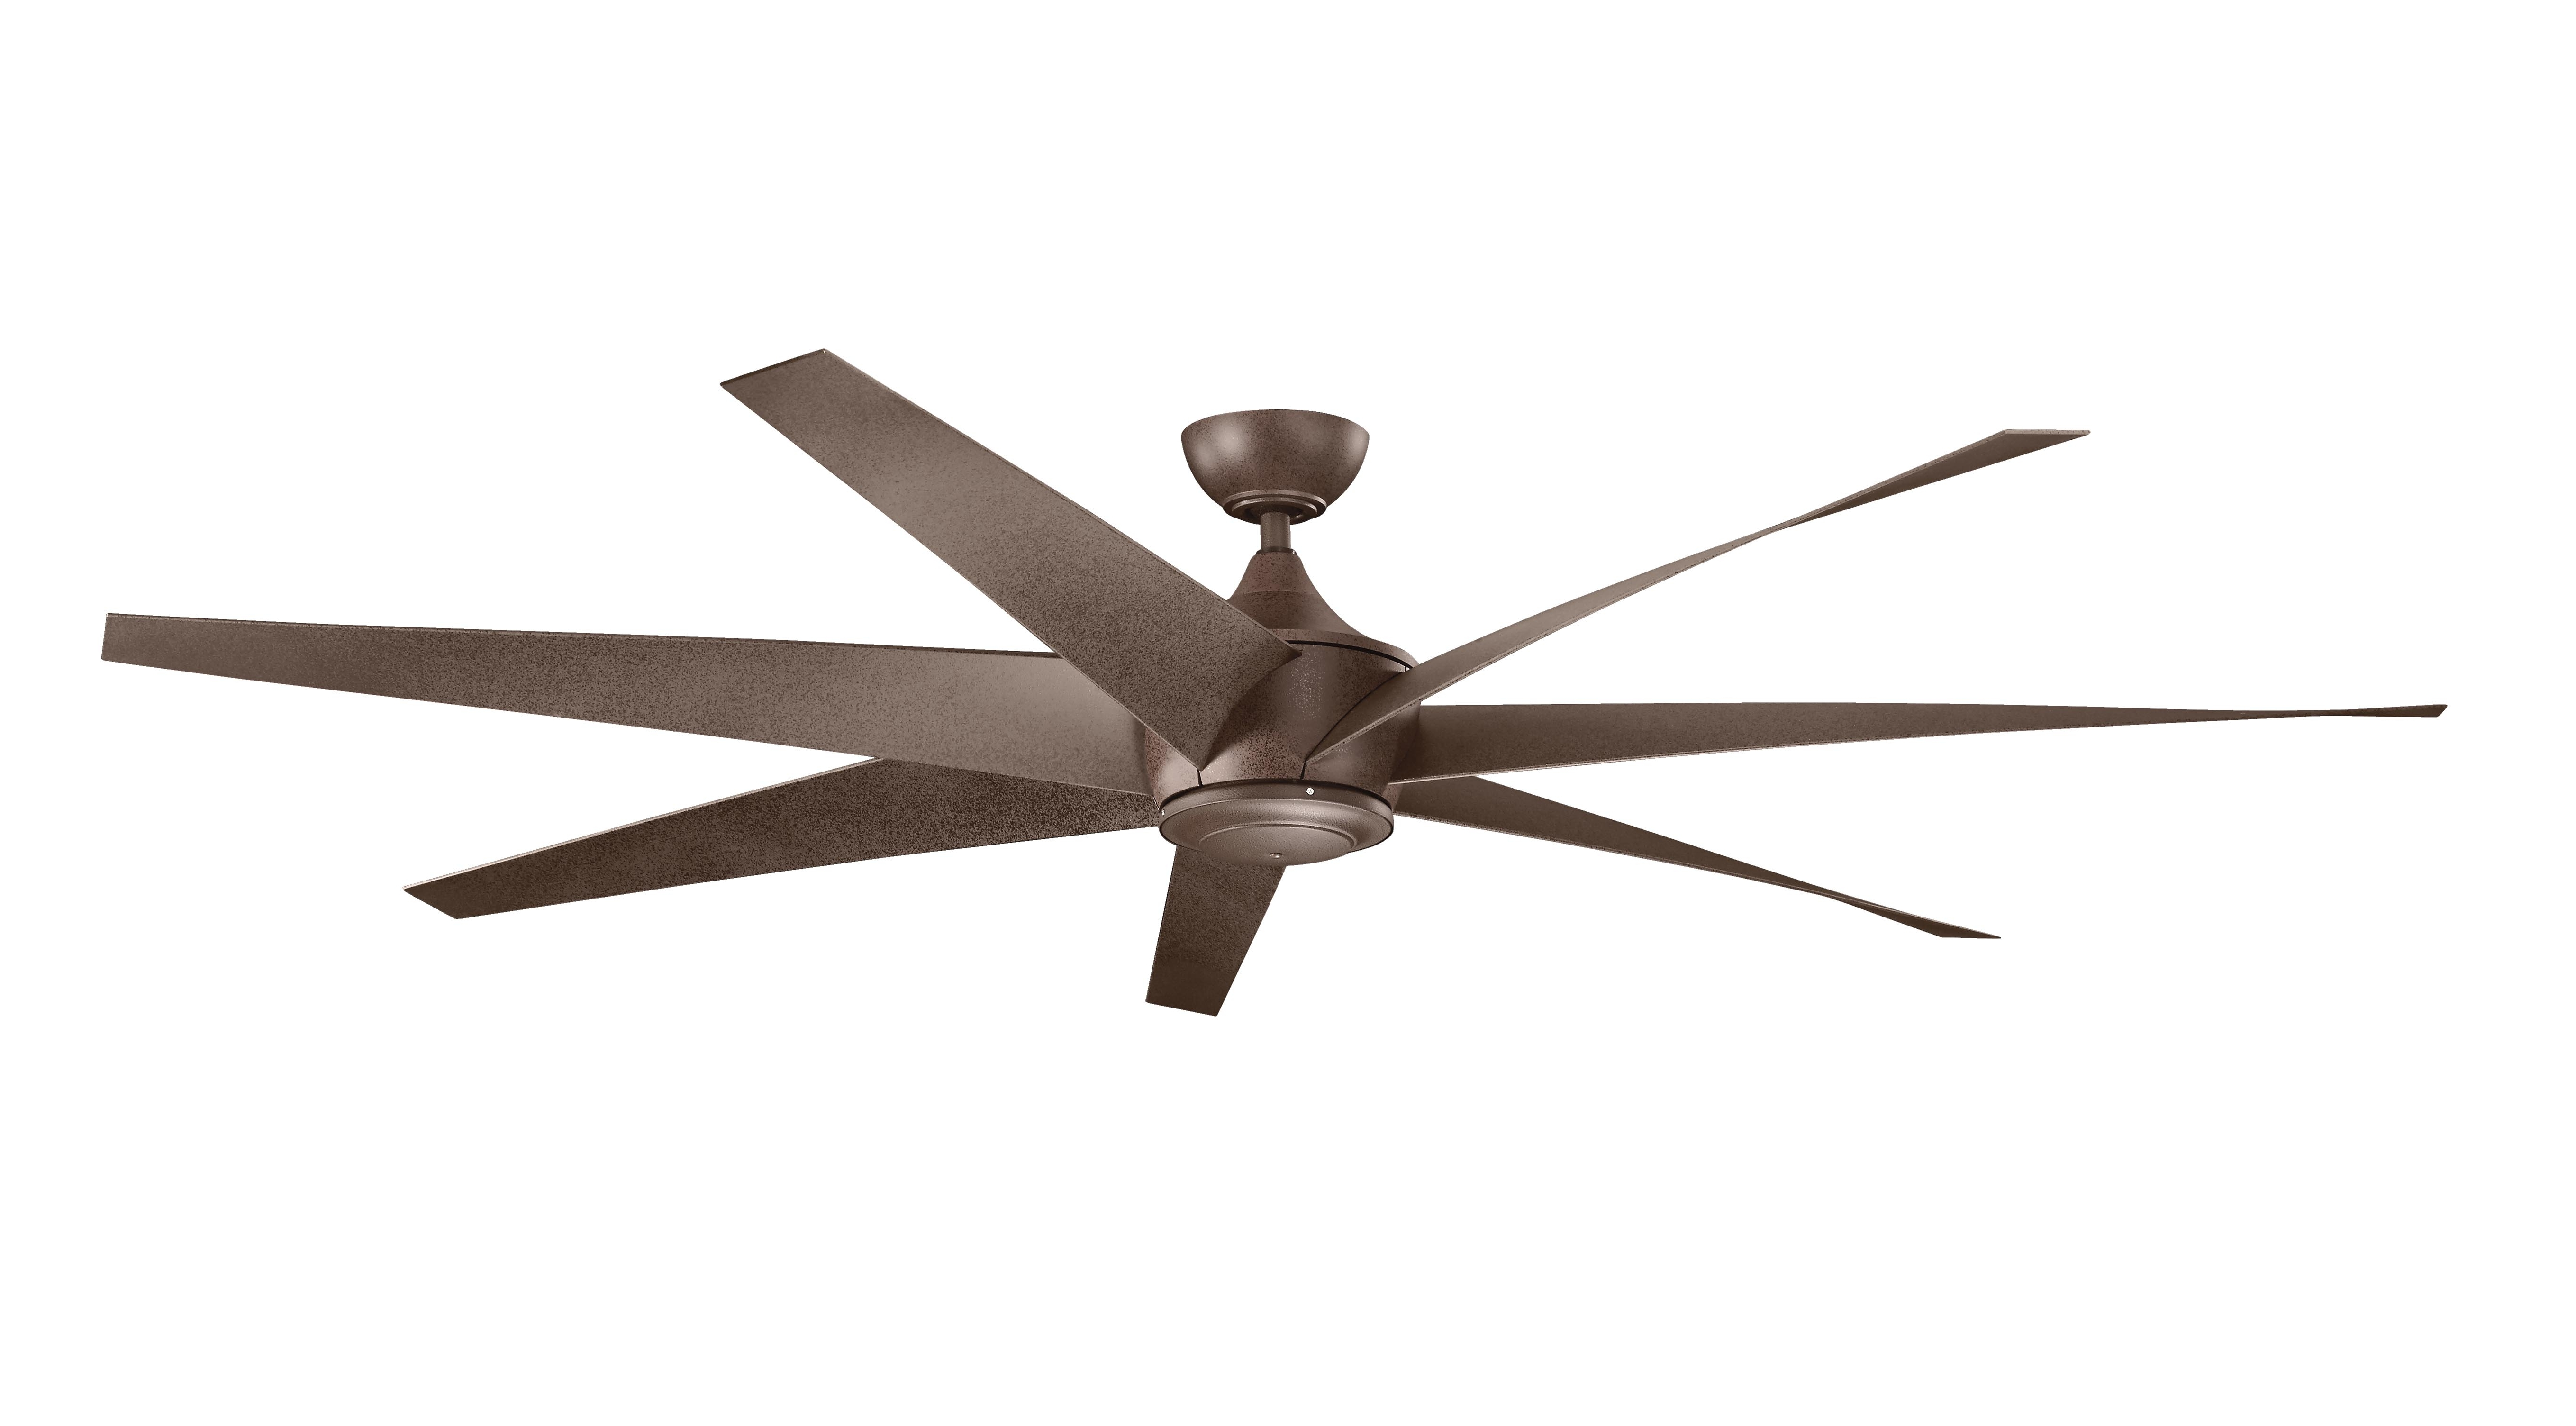 Fashionable Kichler Lehr Wet Climate Dc Ceiling Fan – New For 2016 Throughout 72 Predator Bronze Outdoor Ceiling Fans With Light Kit (View 5 of 20)